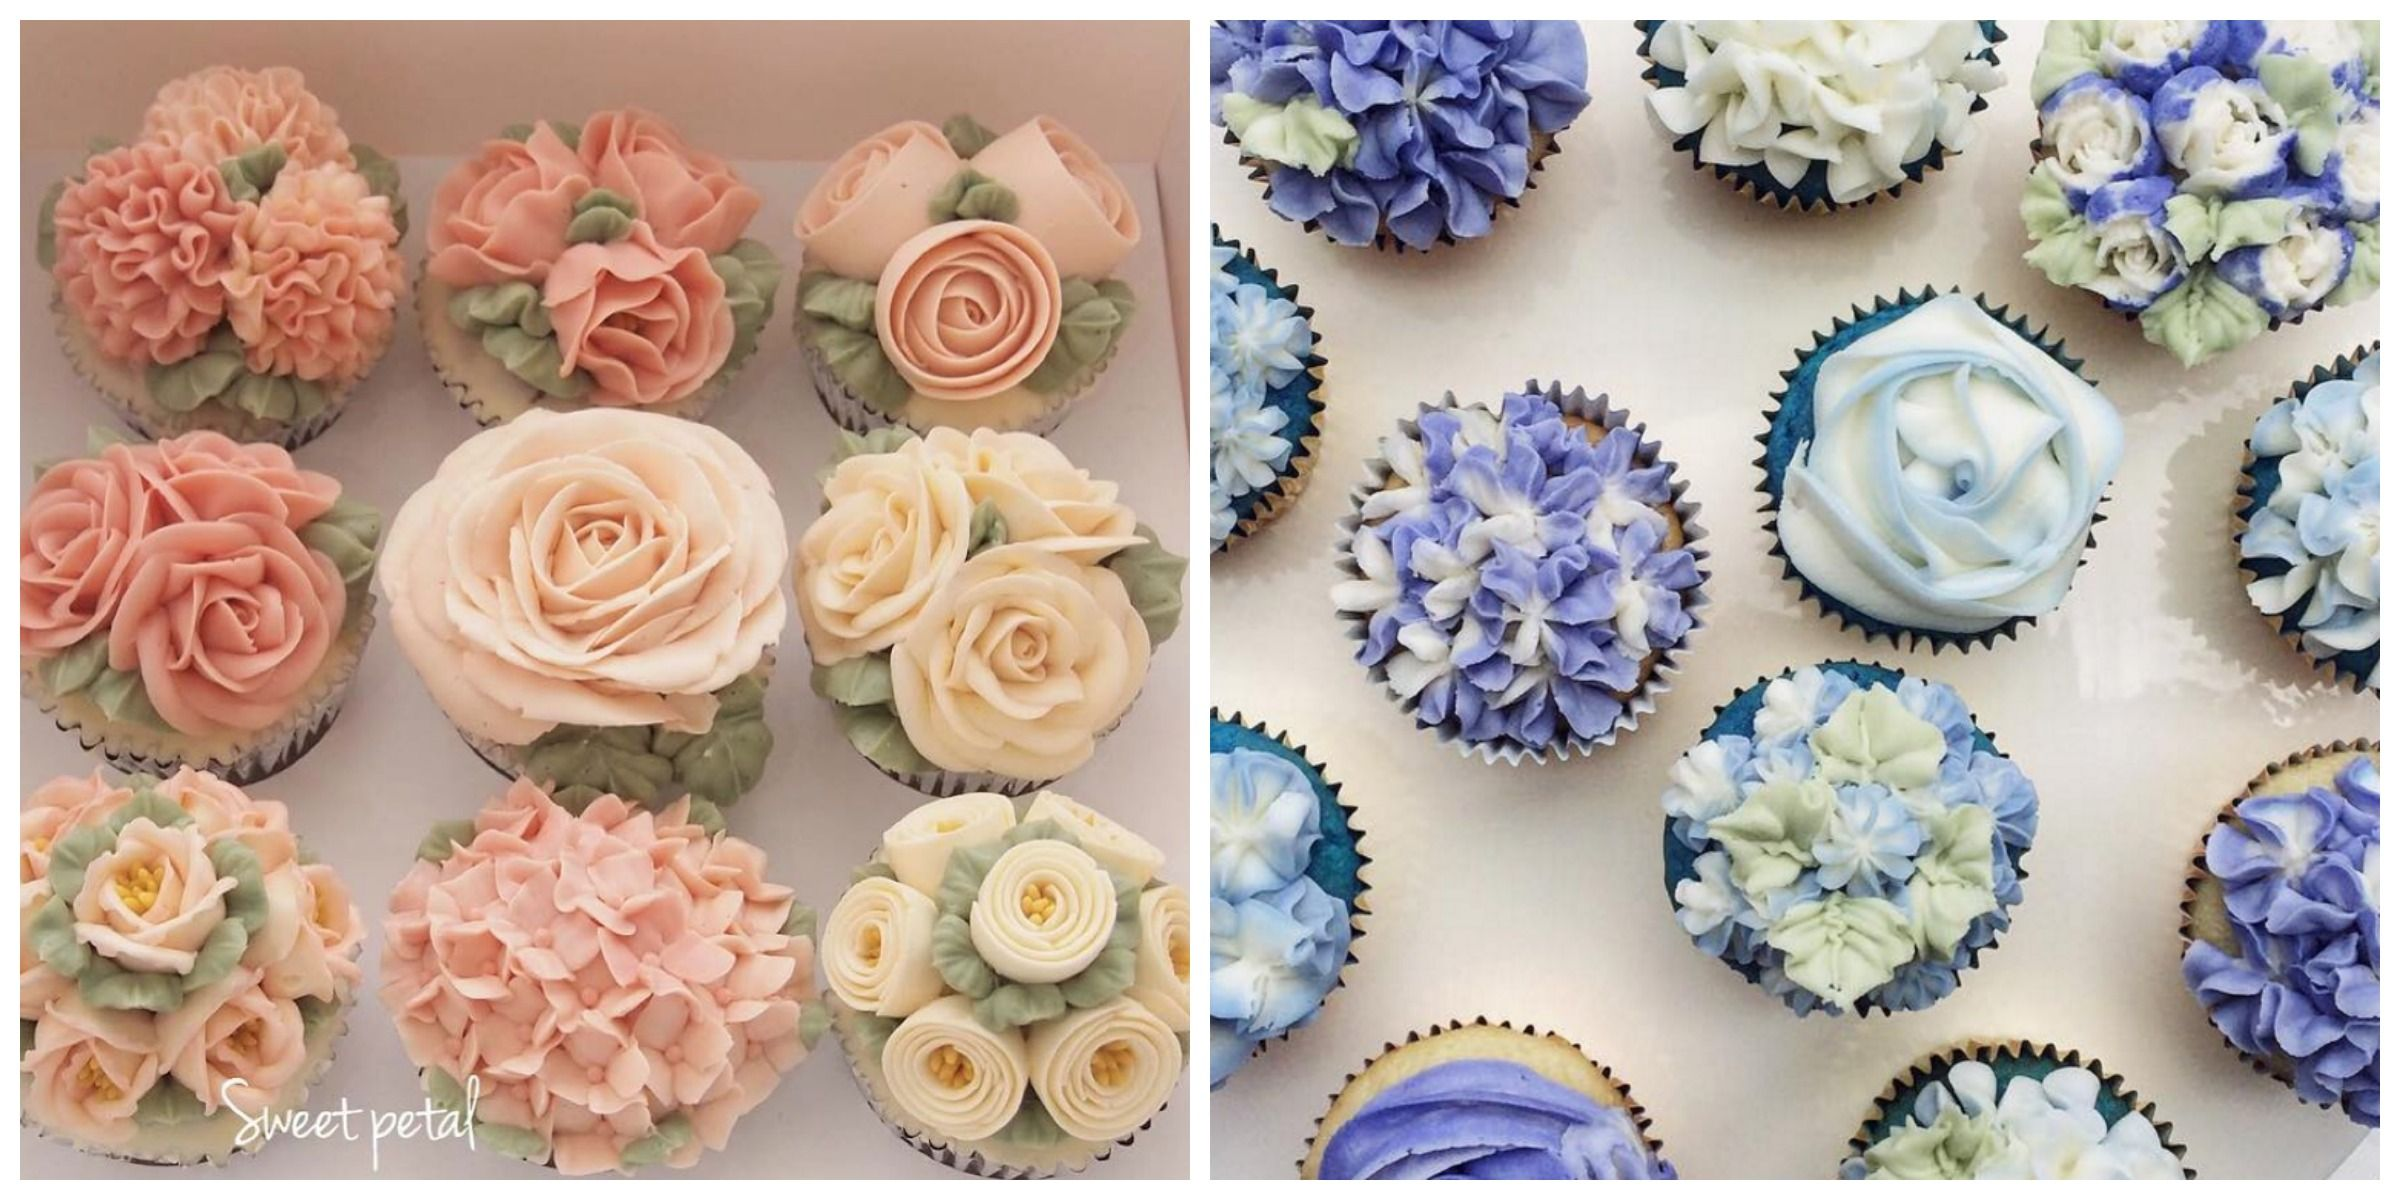 Cupcake piping ideas ways to frost cupcakes izmirmasajfo